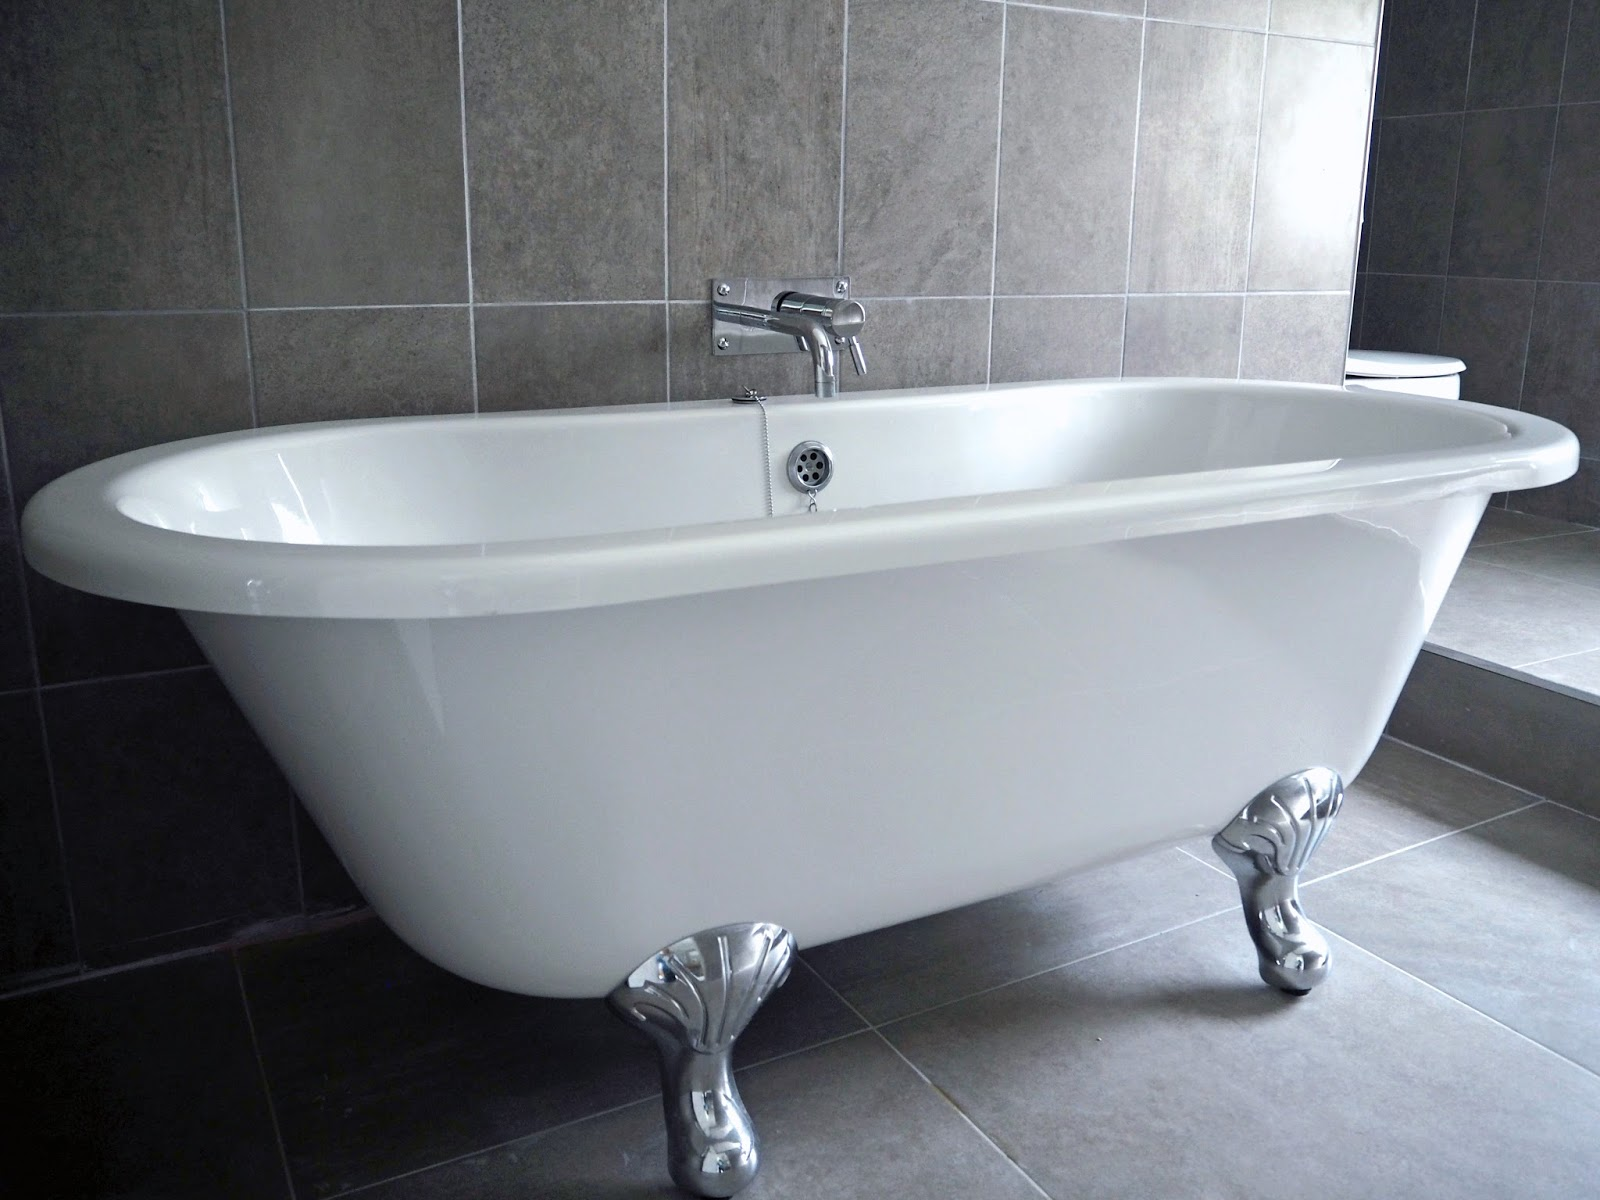 Rolltop bath in suite room 51, Stirk House, Gisburn